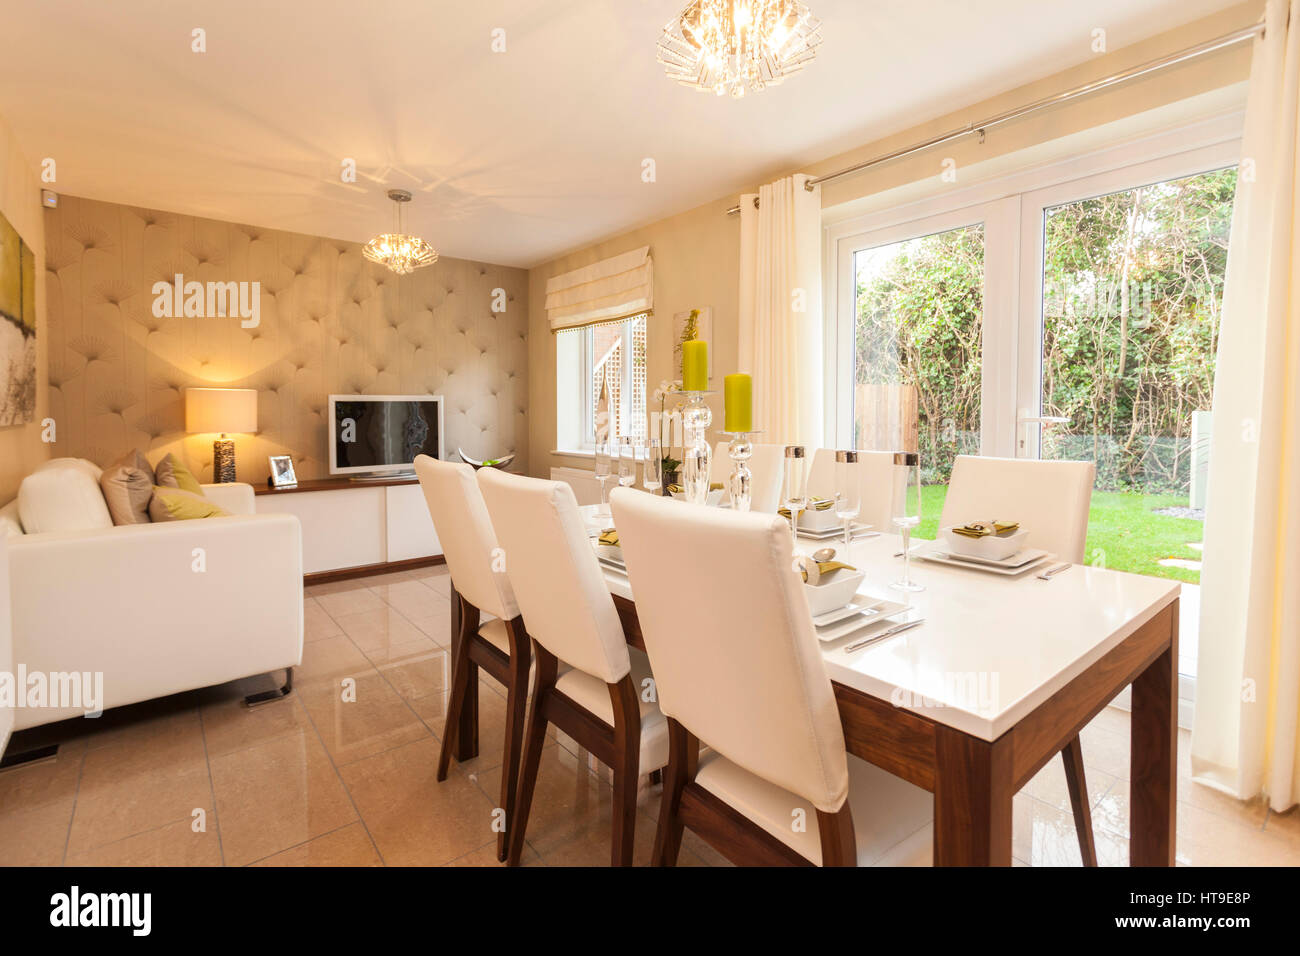 Home Interior Dining Room French Windows Sliding Doors Neutral Colours Cream White Beigedining Table Laideating Dinner